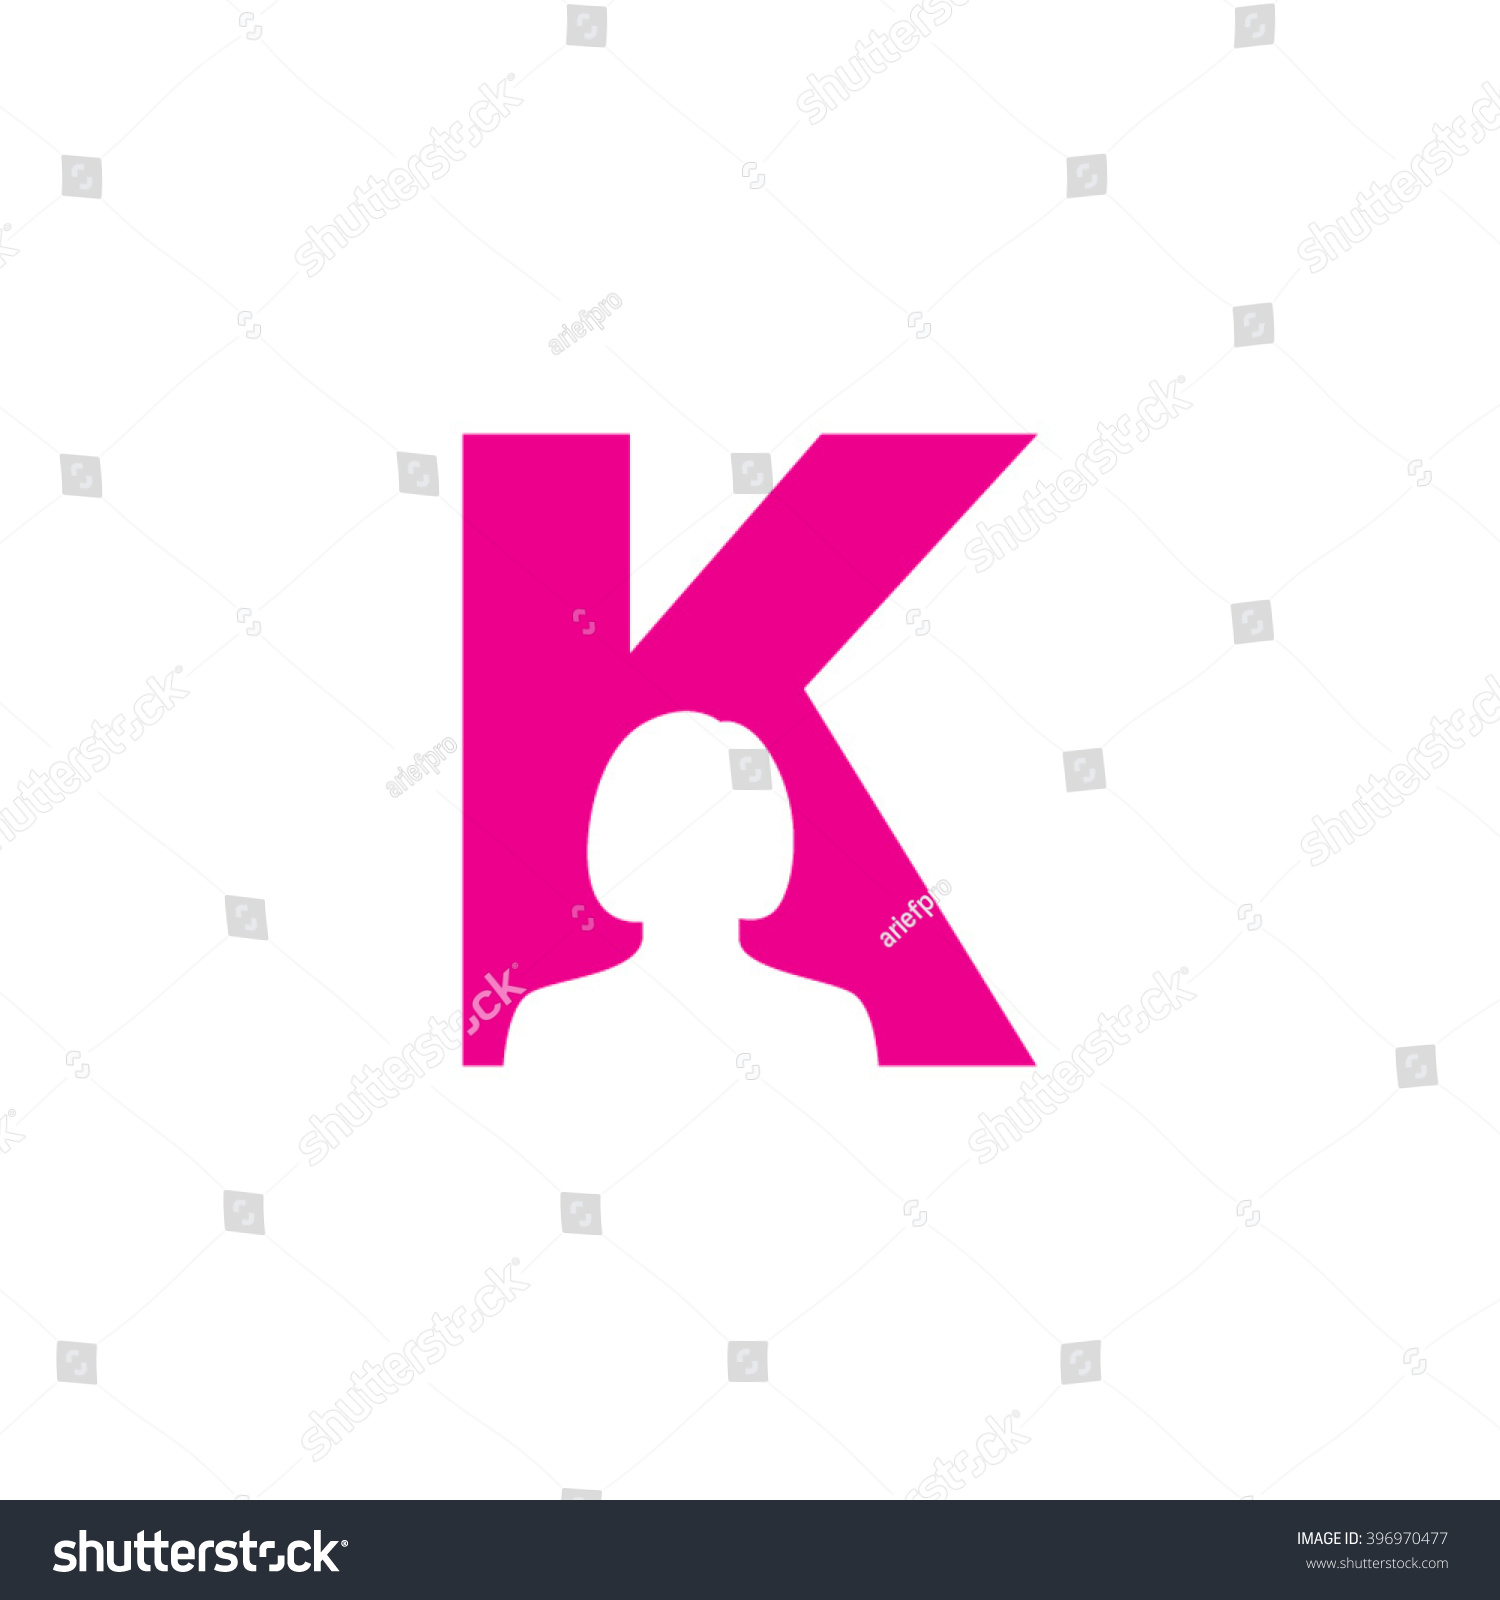 K Alphabet Woman Avatar Business Letter Stock Vector (Royalty Free ...